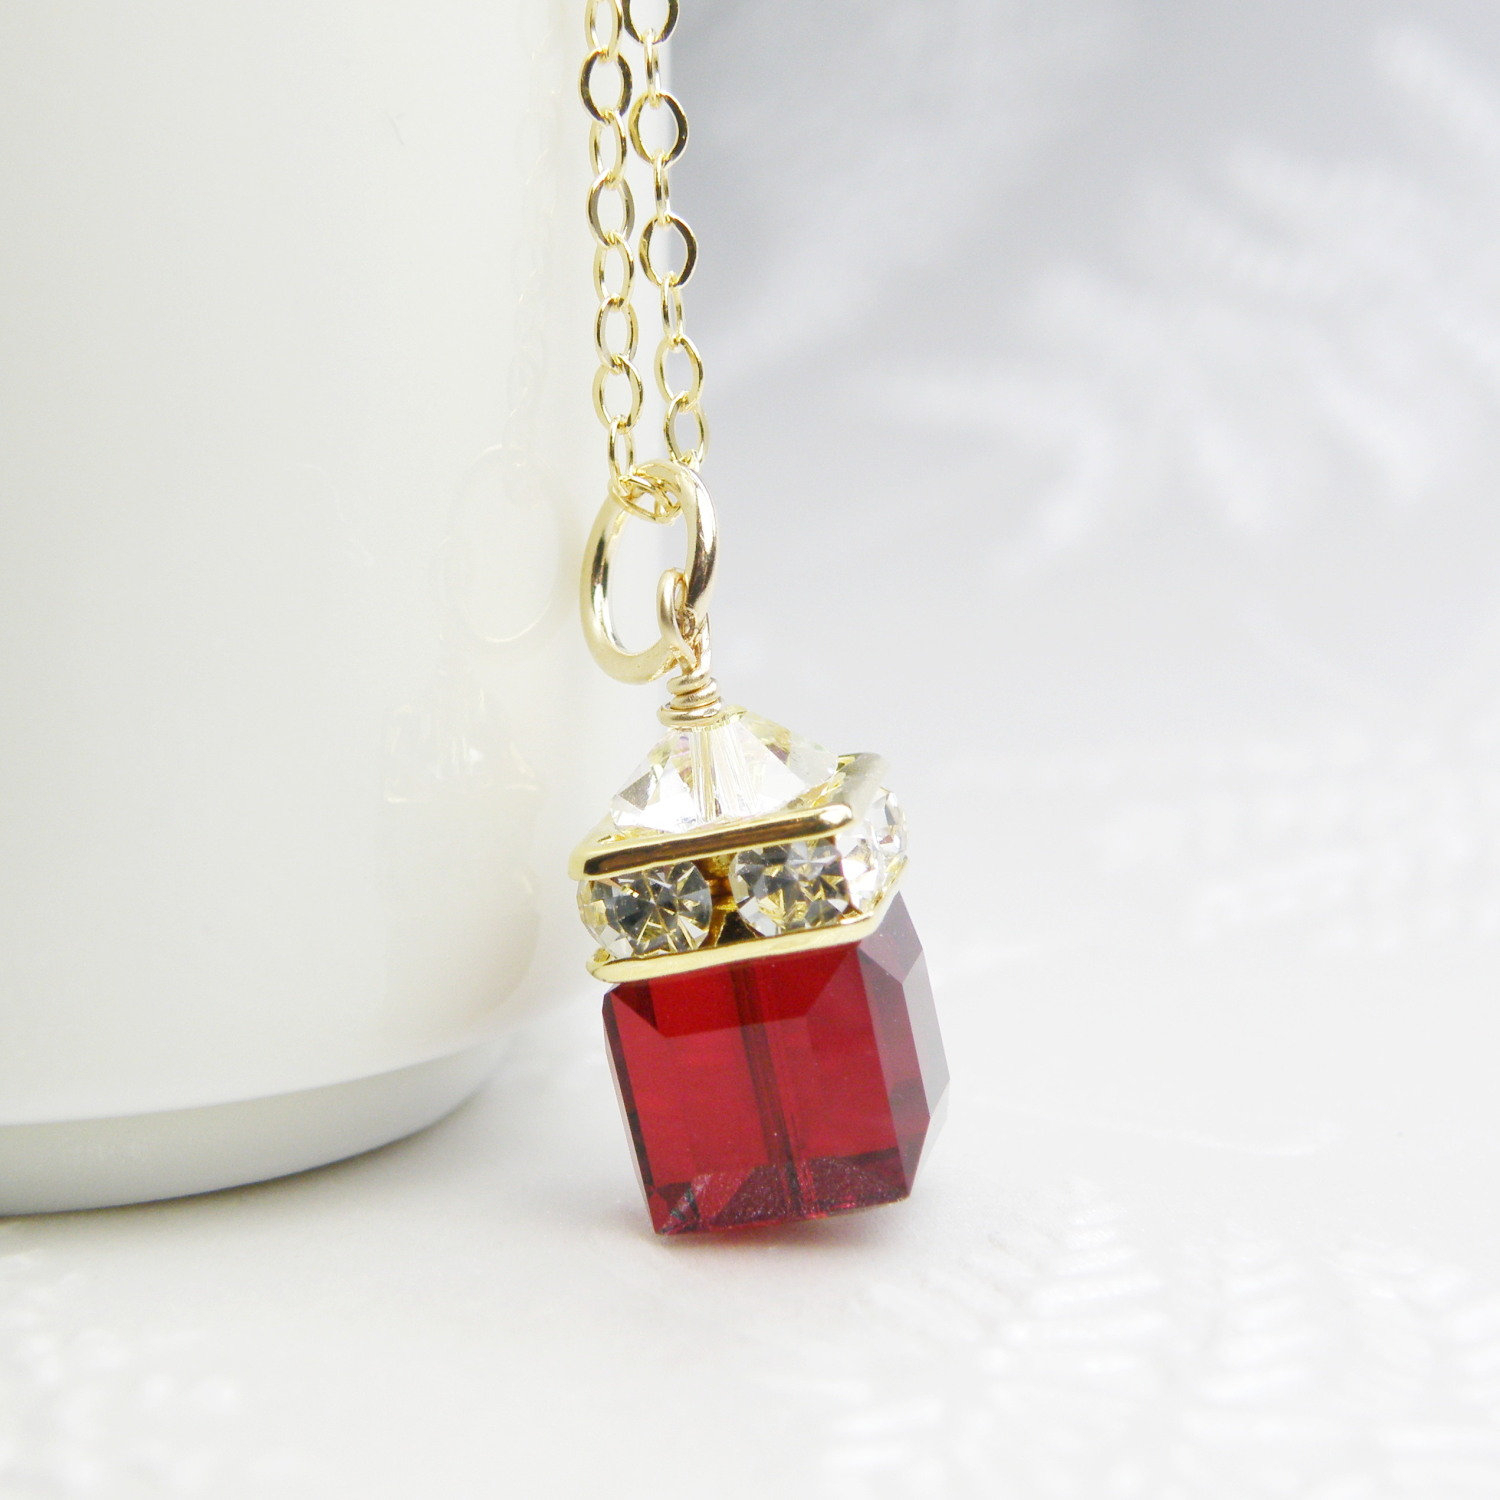 Red Garnet Cube Necklace, Red Swarovski Crystal Pendant, Gold Filled, Bridesmaid Wedding Jewelry, January Birthstone Birthday Gift For Wife Pertaining To Most Up To Date Garnet Red January Birthstone Locket Element Necklaces (View 8 of 25)